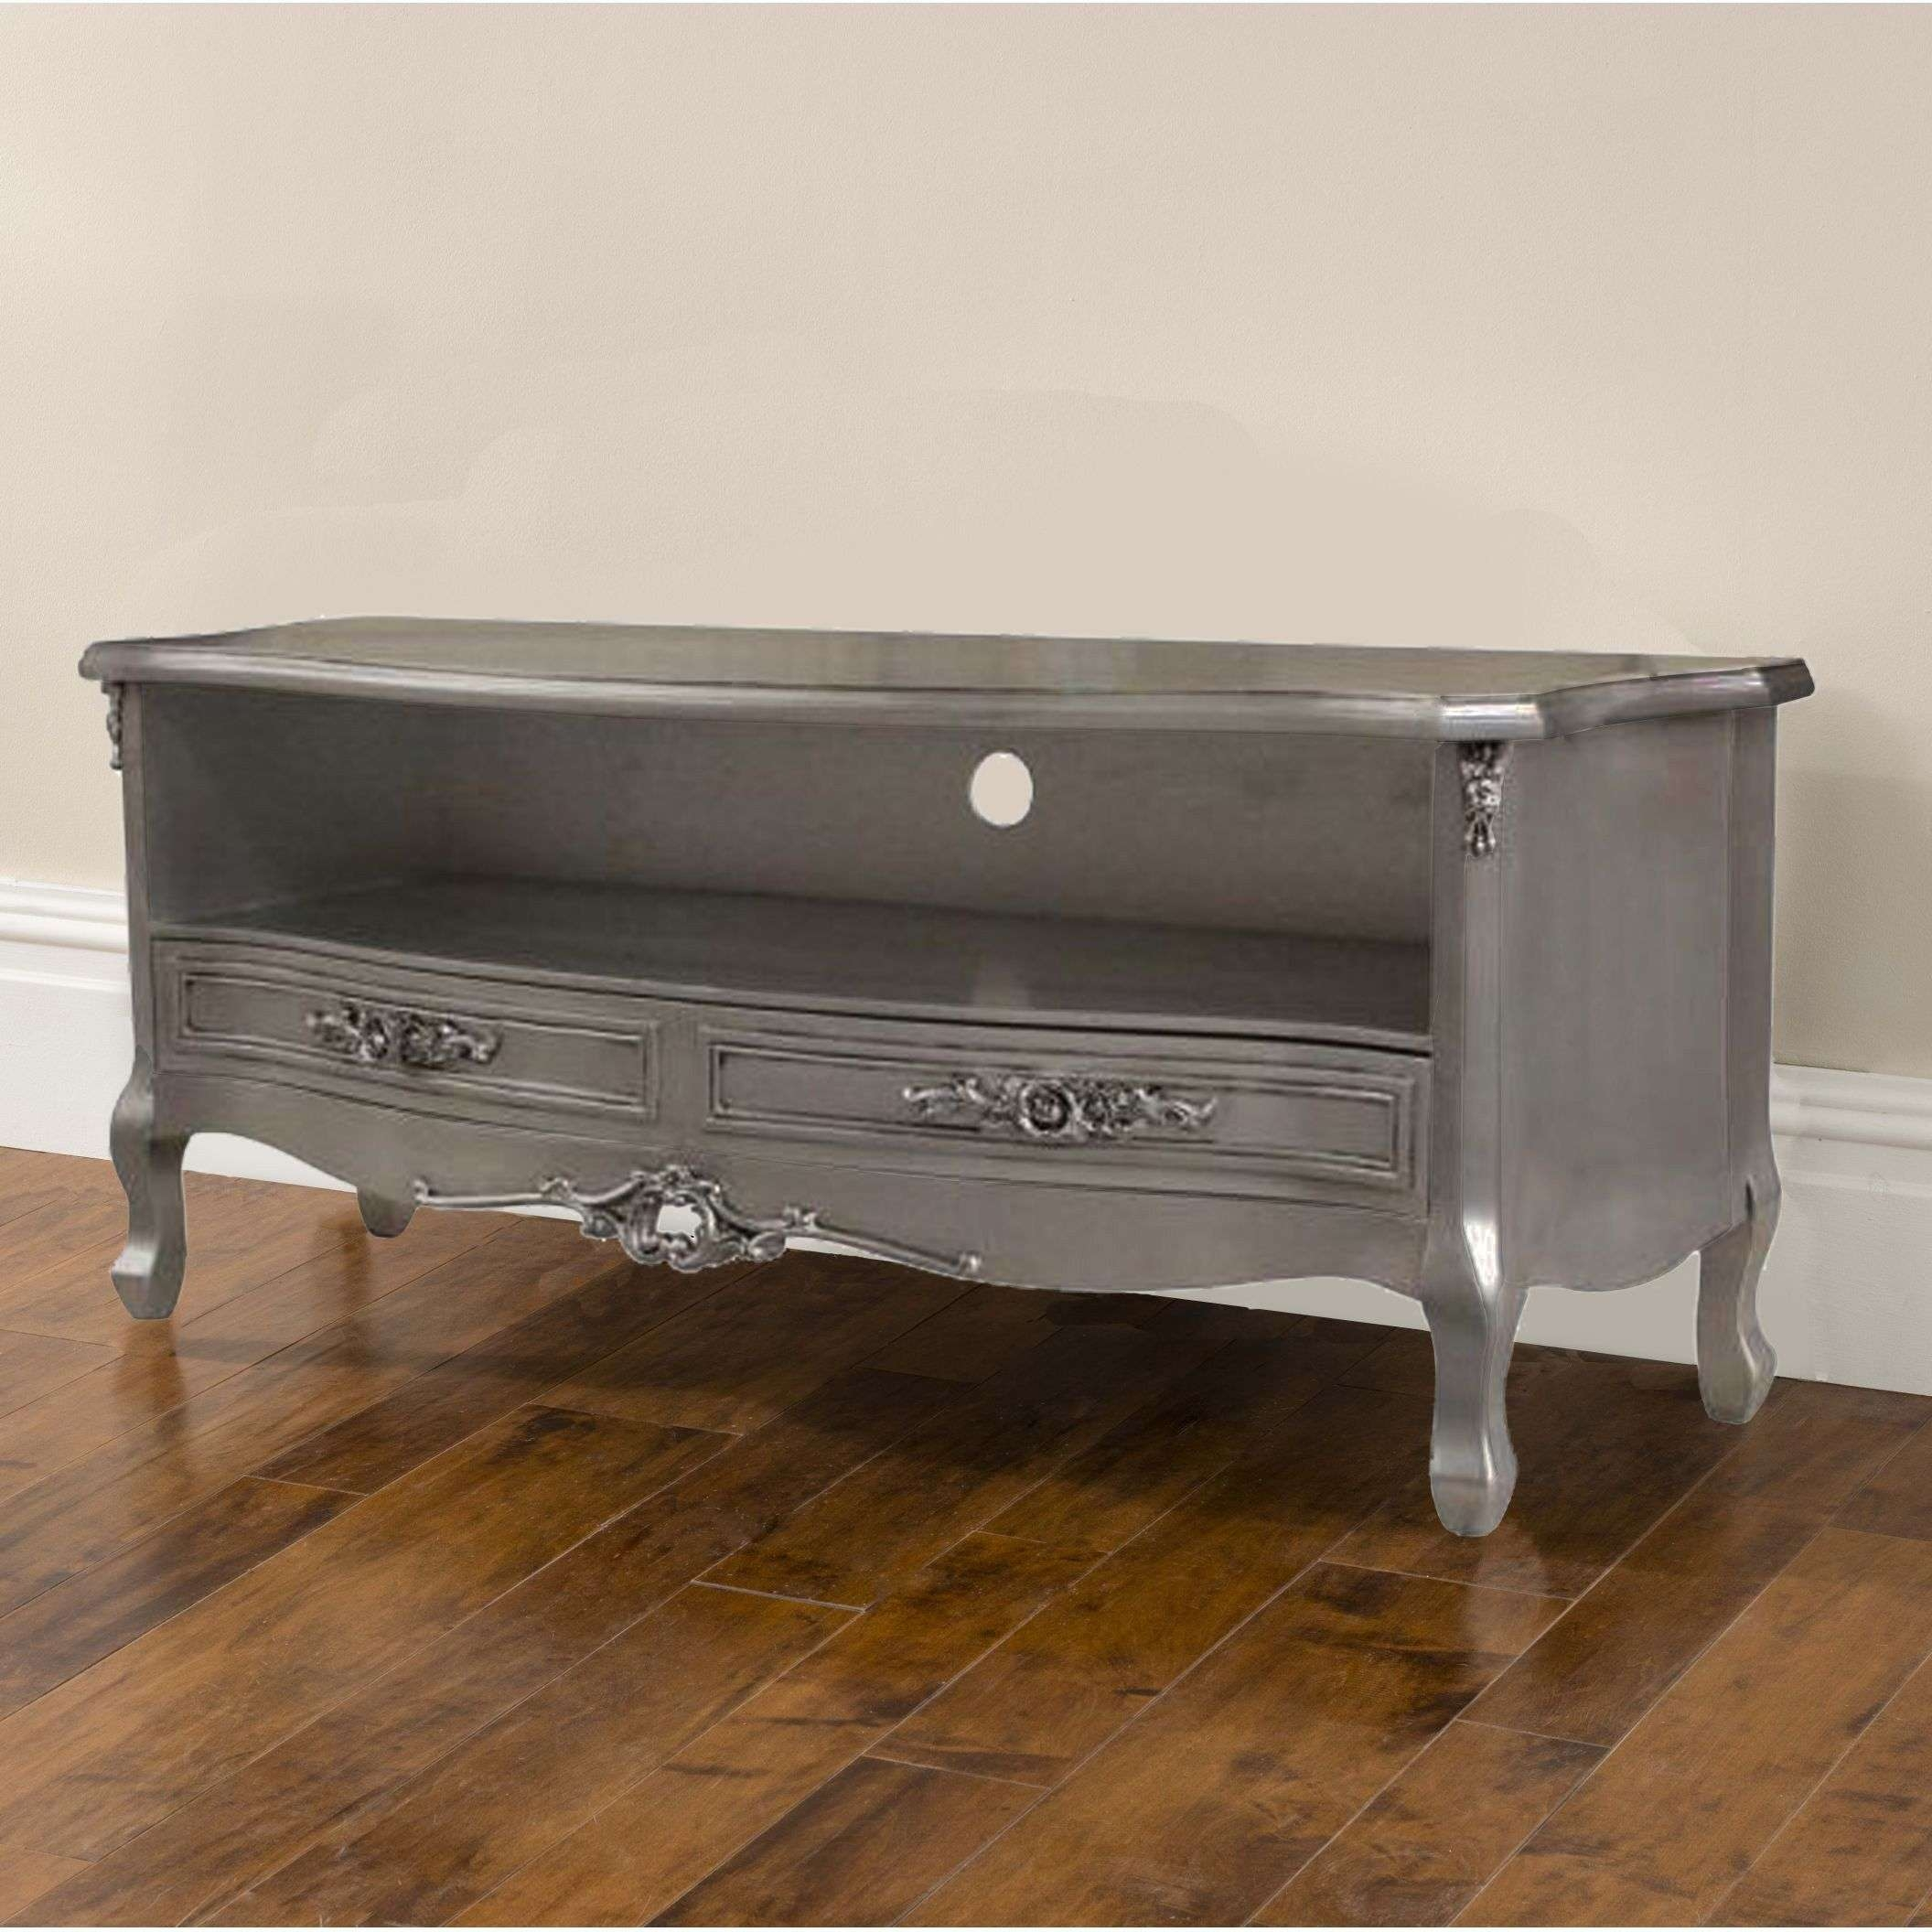 Silver Antique French Tv Cabinet Intended For French Style Tv Cabinets (View 17 of 20)